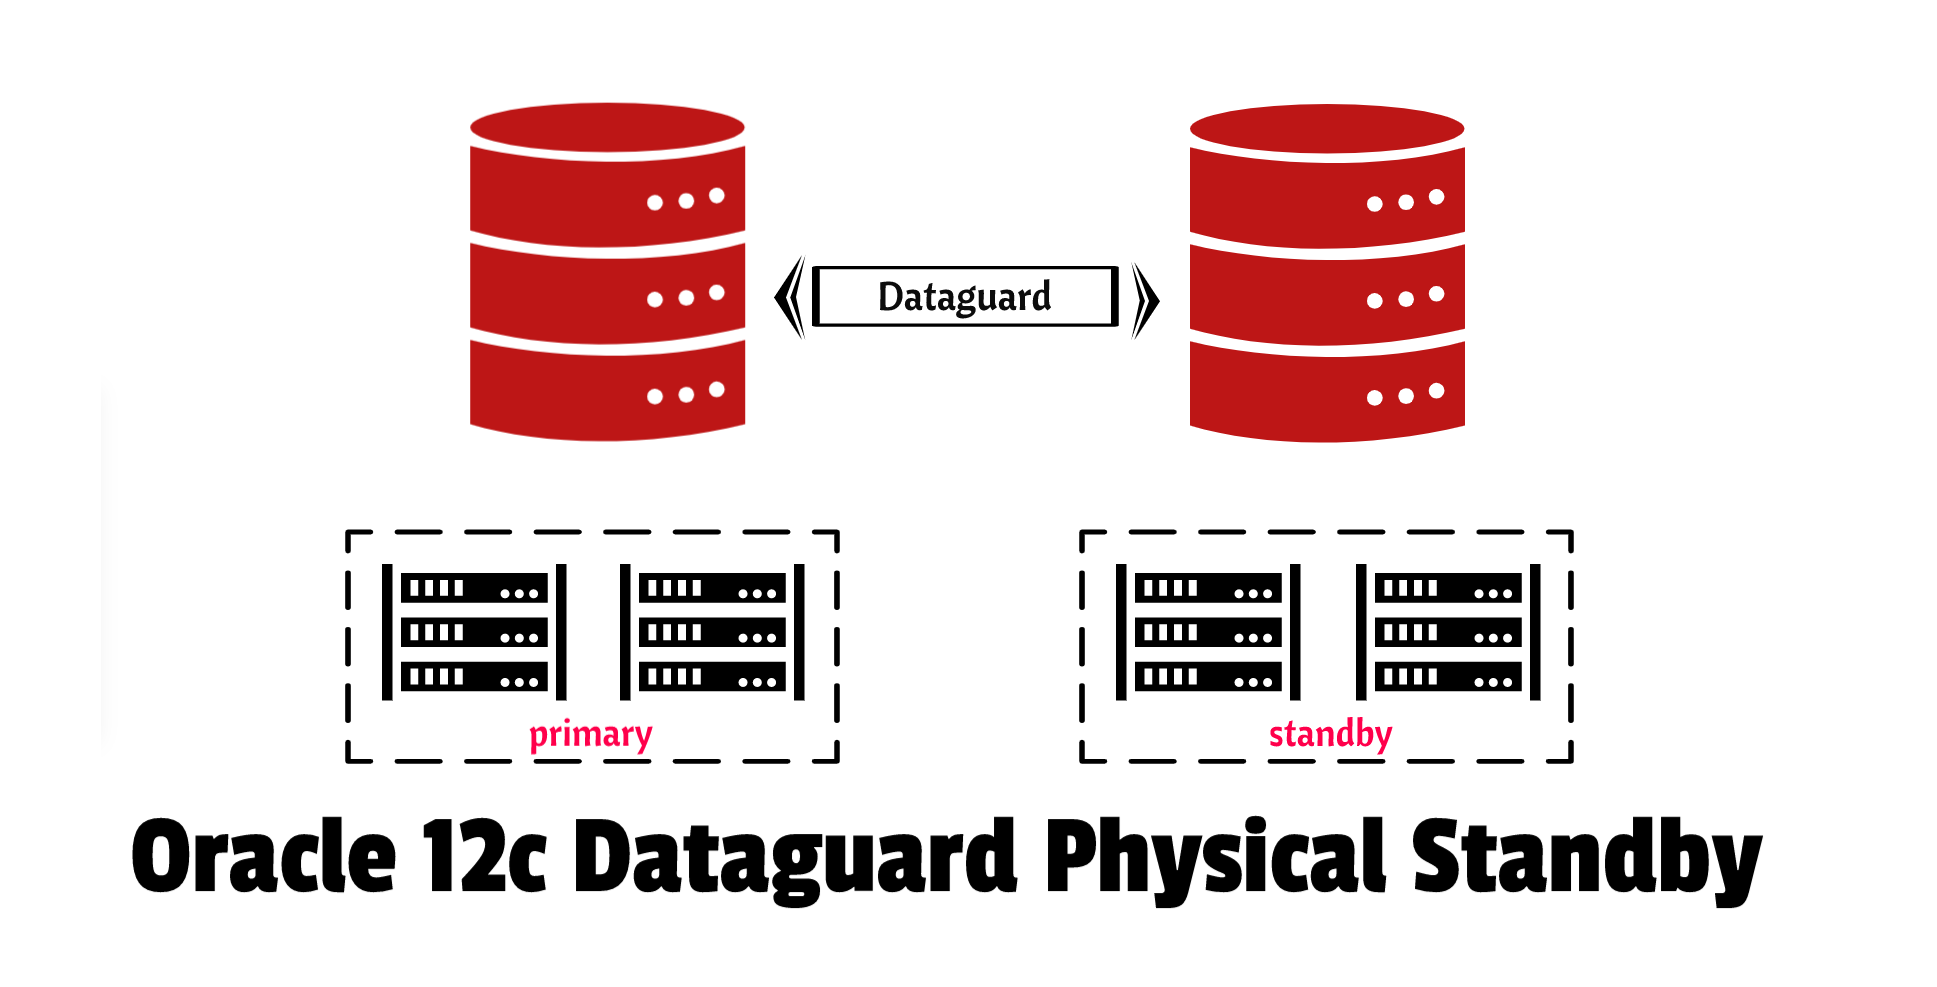 Oracle dataguard physical standby